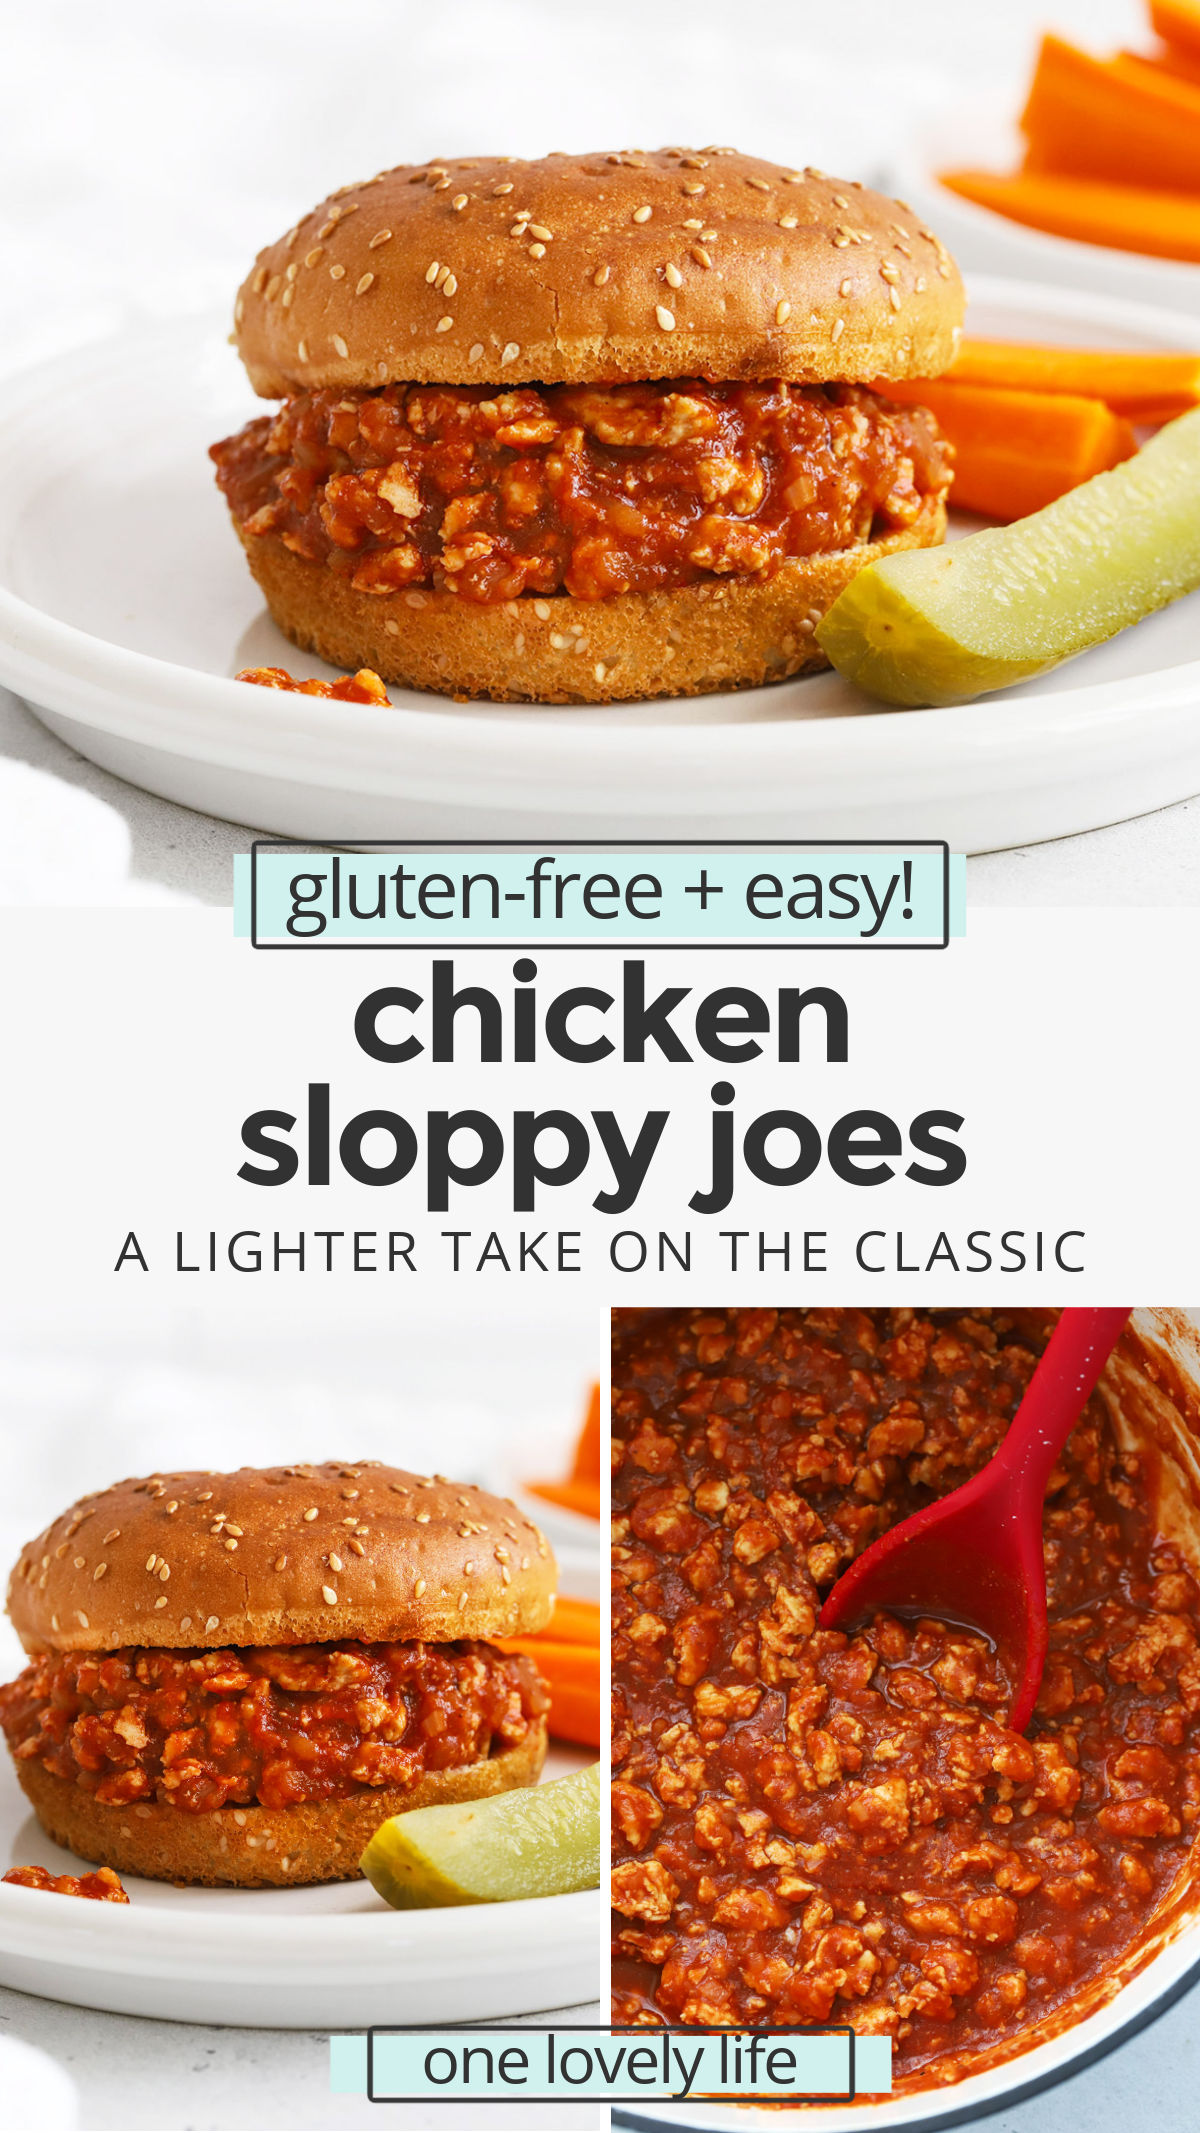 Healthy Chicken Sloppy Joes - These healthy sloppy joes are a lighter take on the classic! You'll love the savory sauce and all our favorite ways to serve them! // Healthy Sloppy Joes Recipe // Chicken Sloppy Joe Recipe // Healthy Dinner // Sloppy Joes Recipe // #sloppyjoes #chicken #healthydinner #sandwich #sloppyjoe